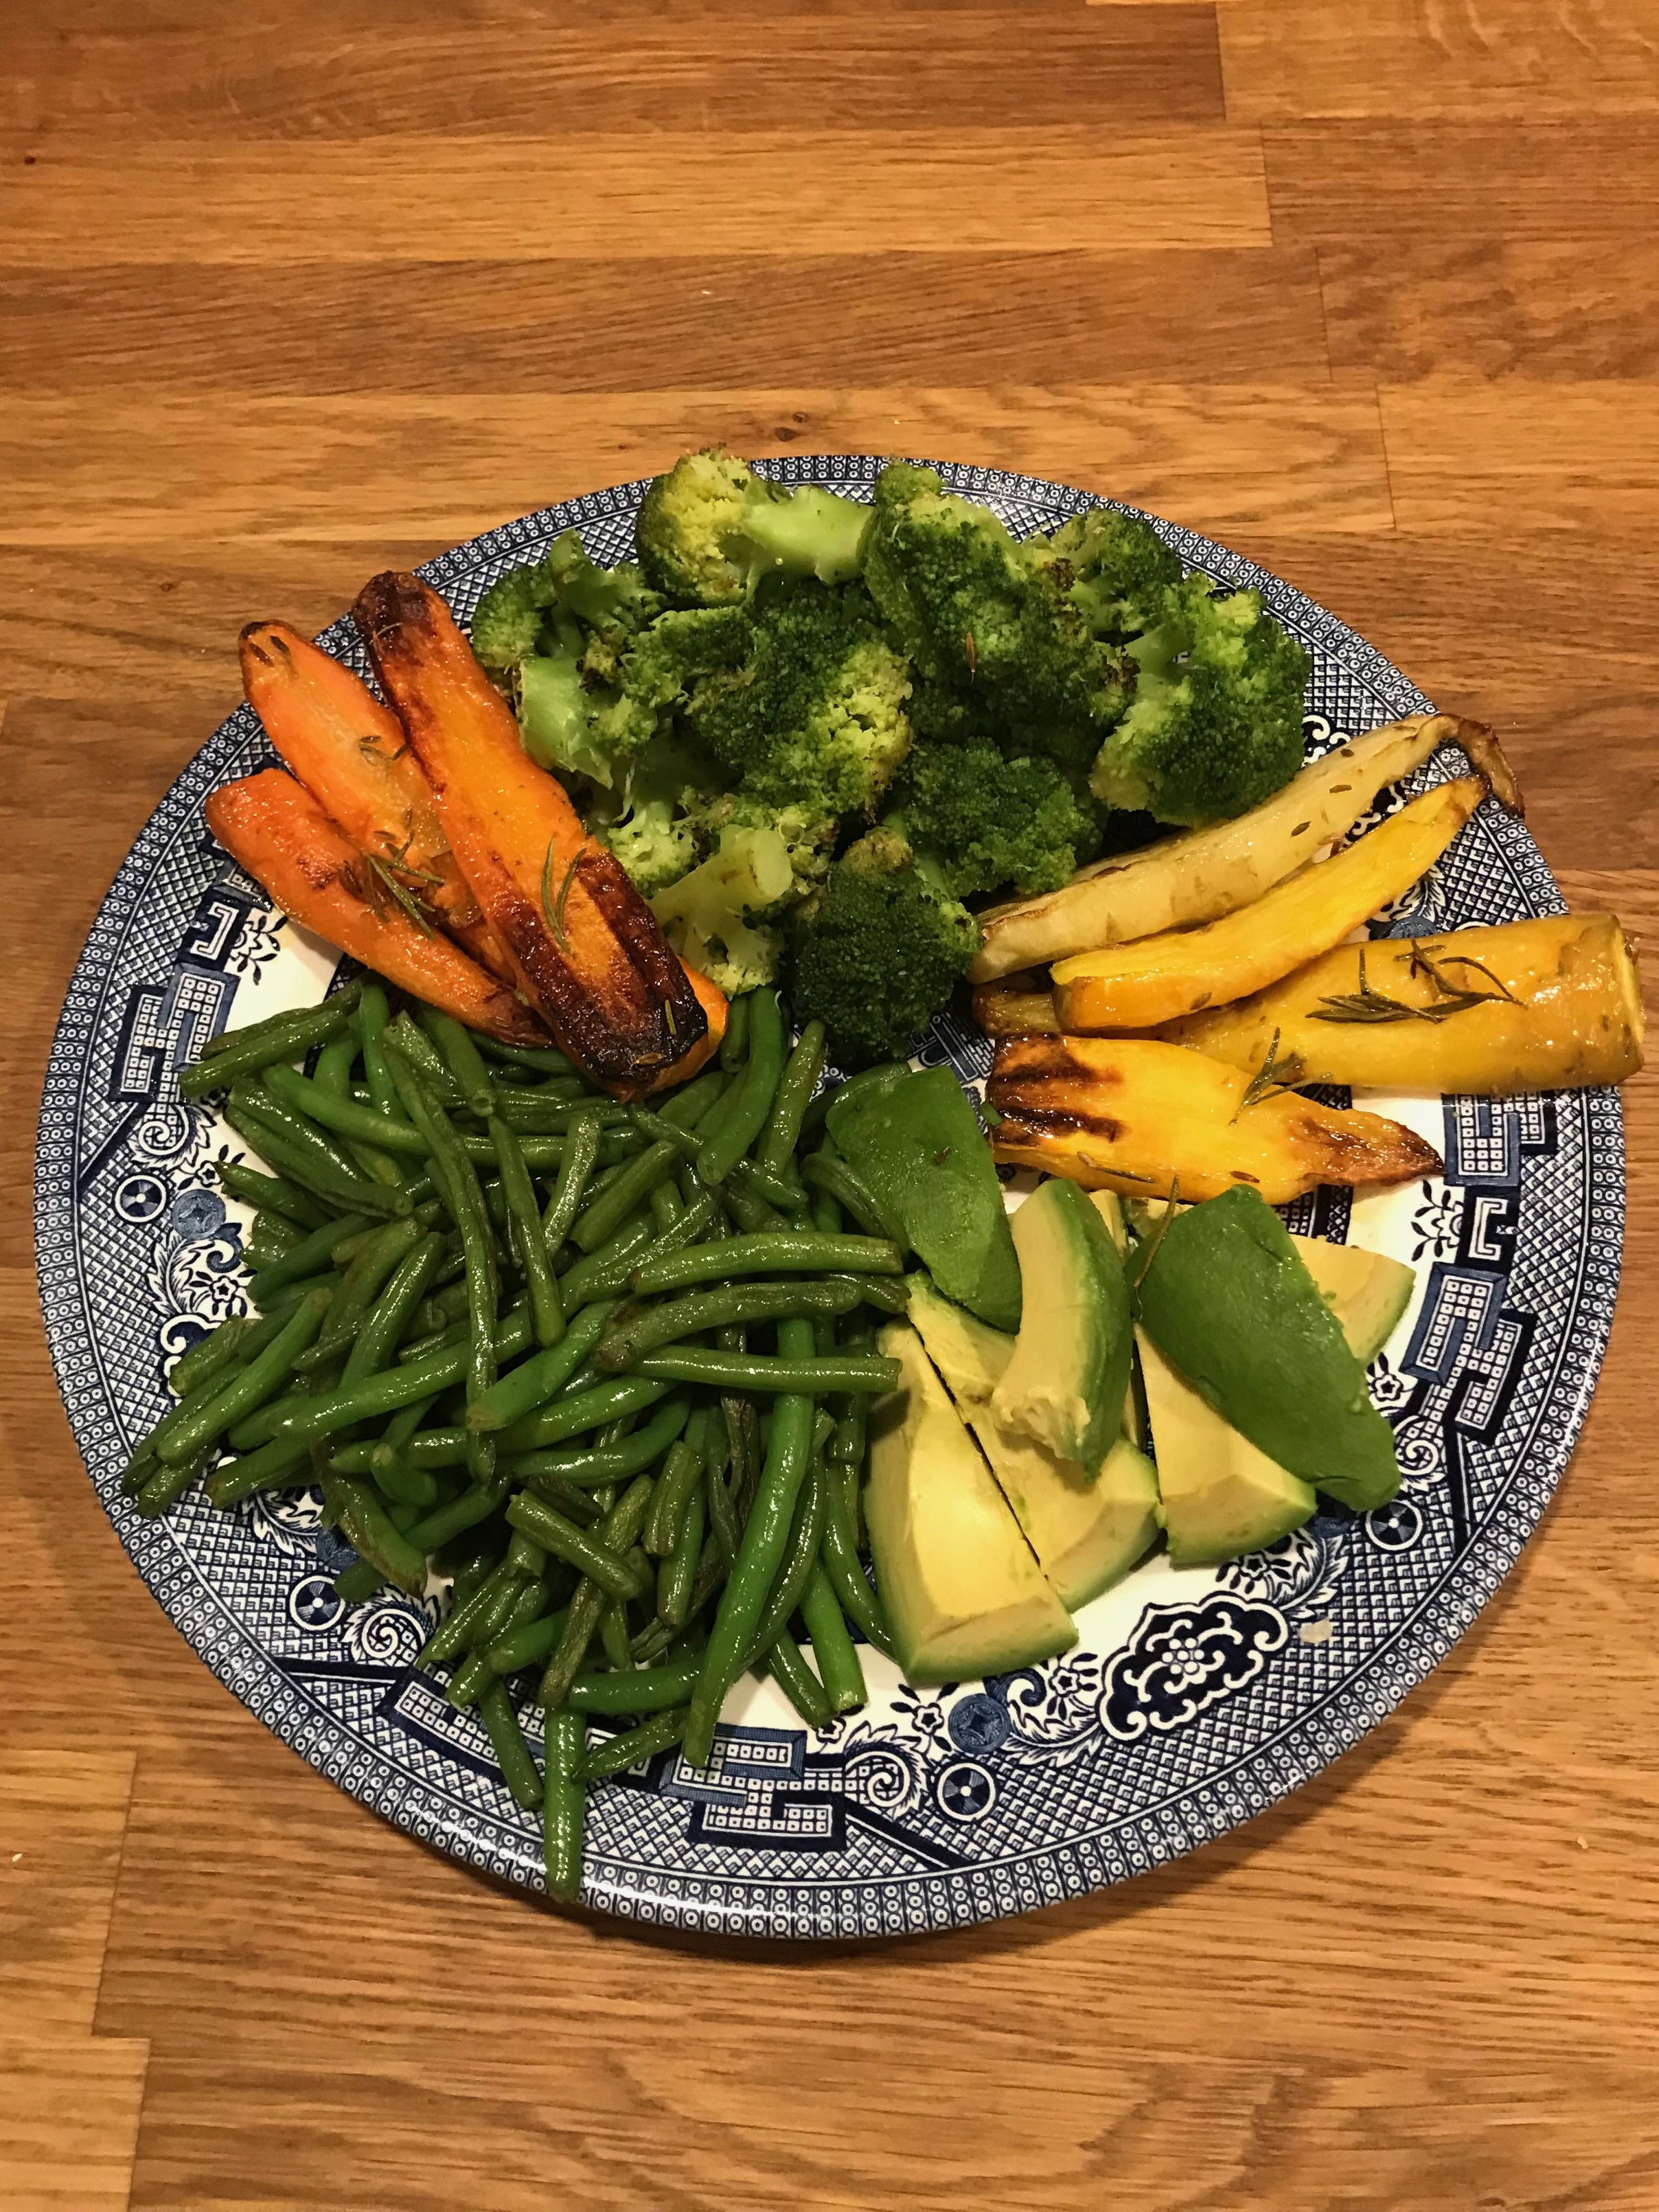 WHAT I EAT IN A DAY, AS A PALEO-VEGAN — Model4greenLiving